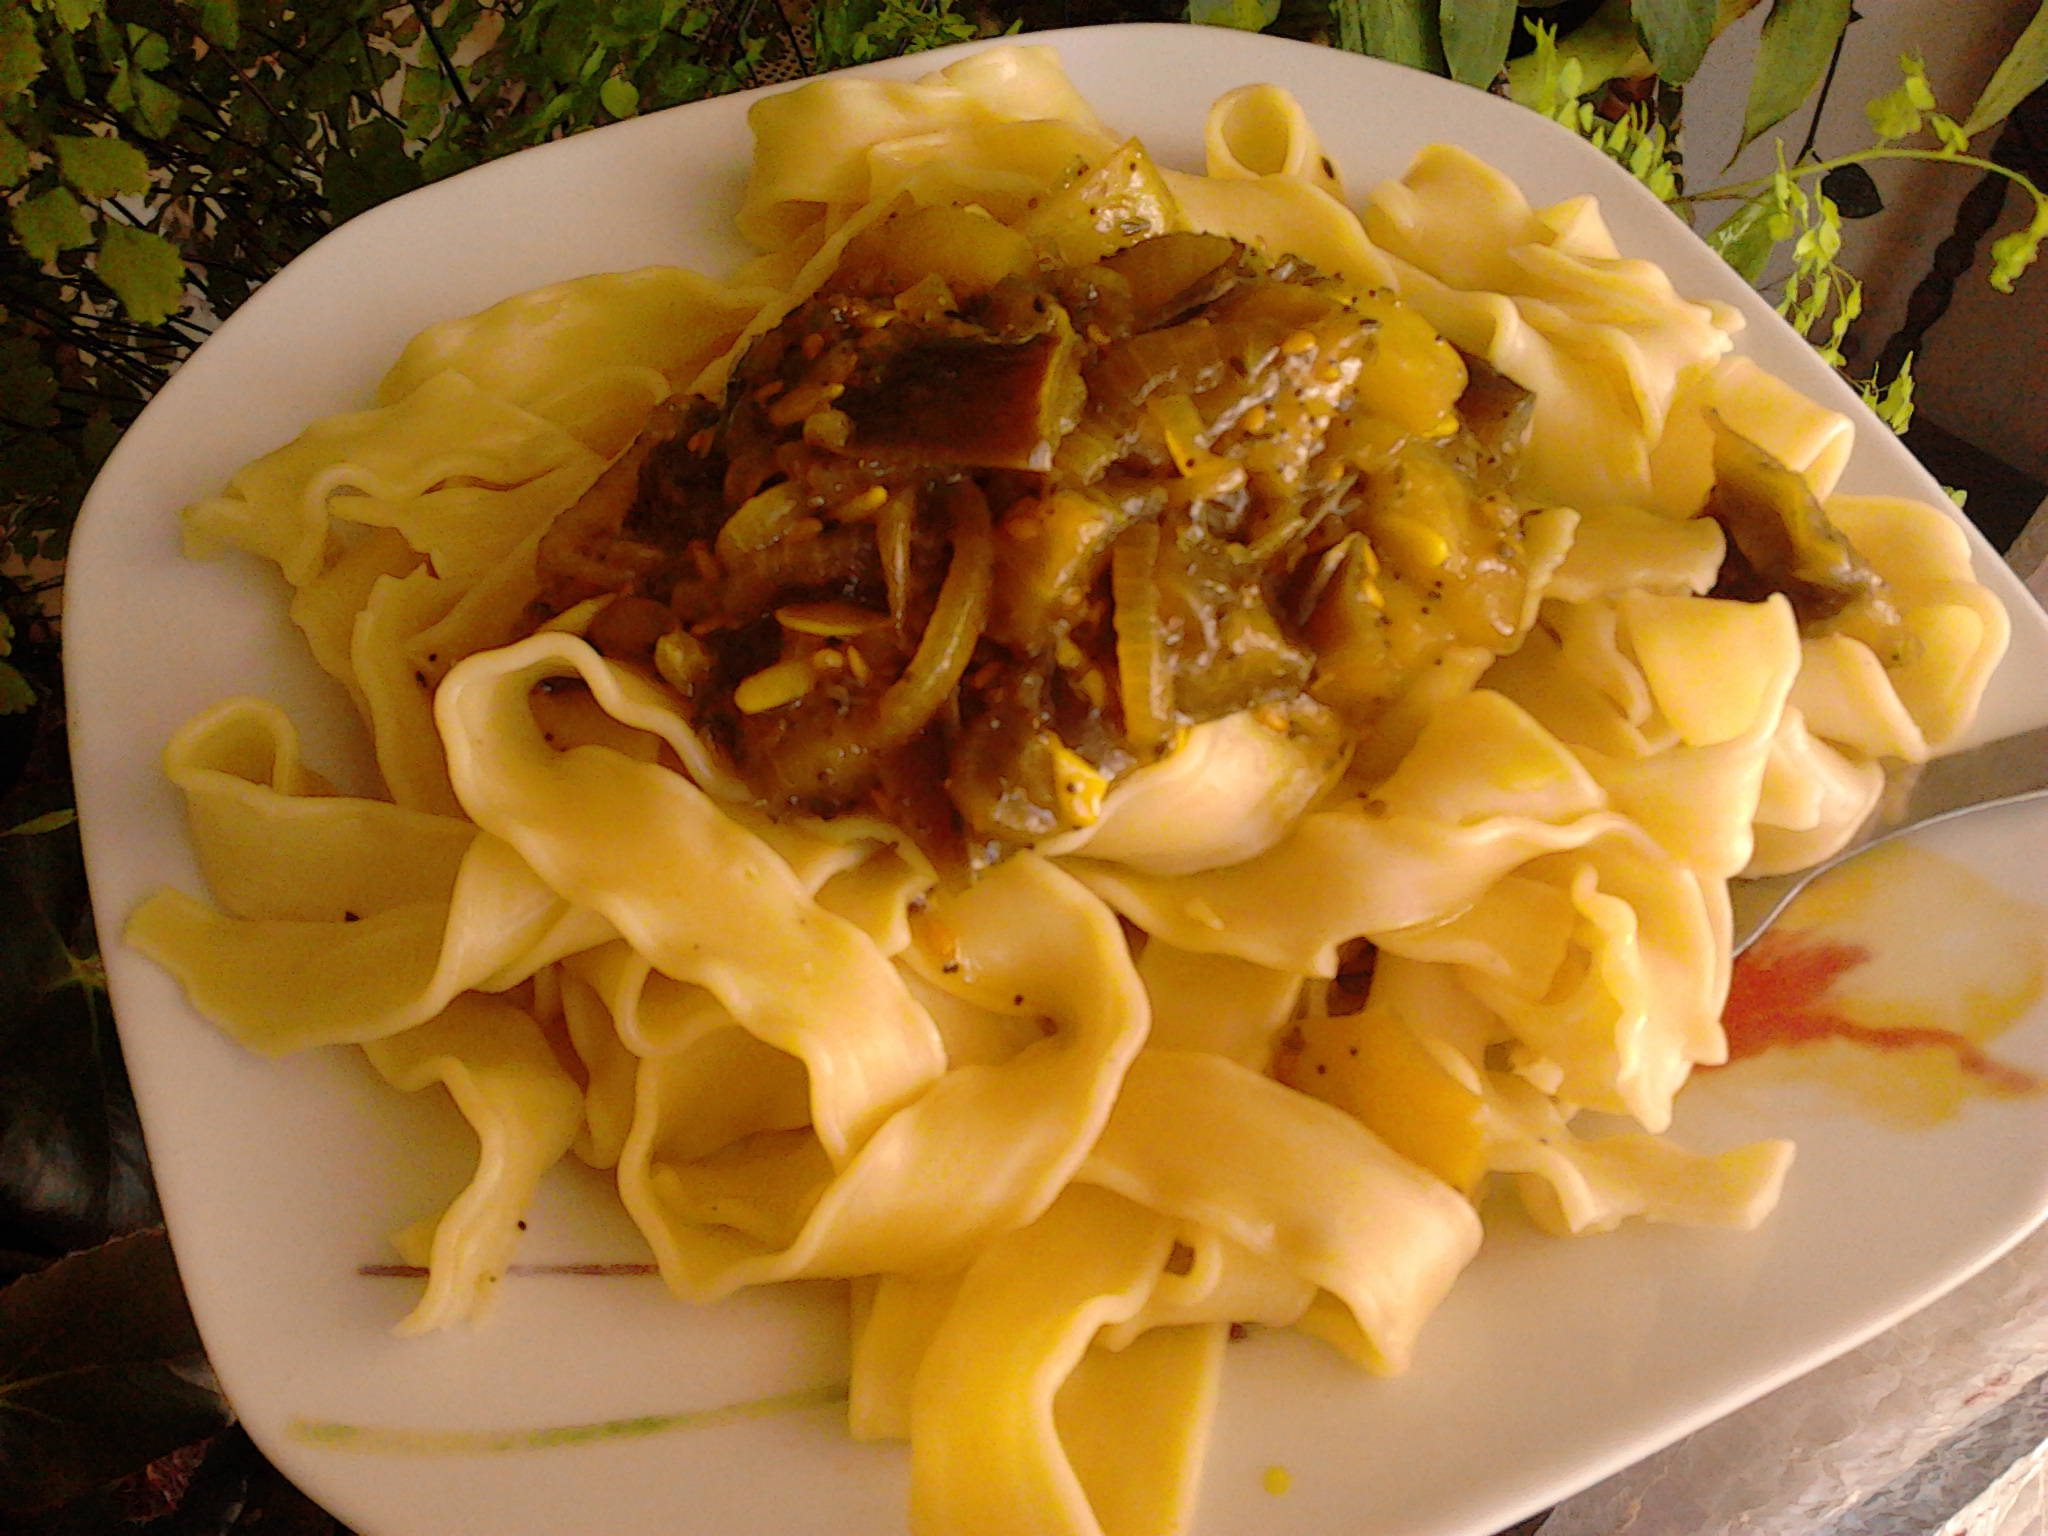 Tagliatelle with vegetables on the plate